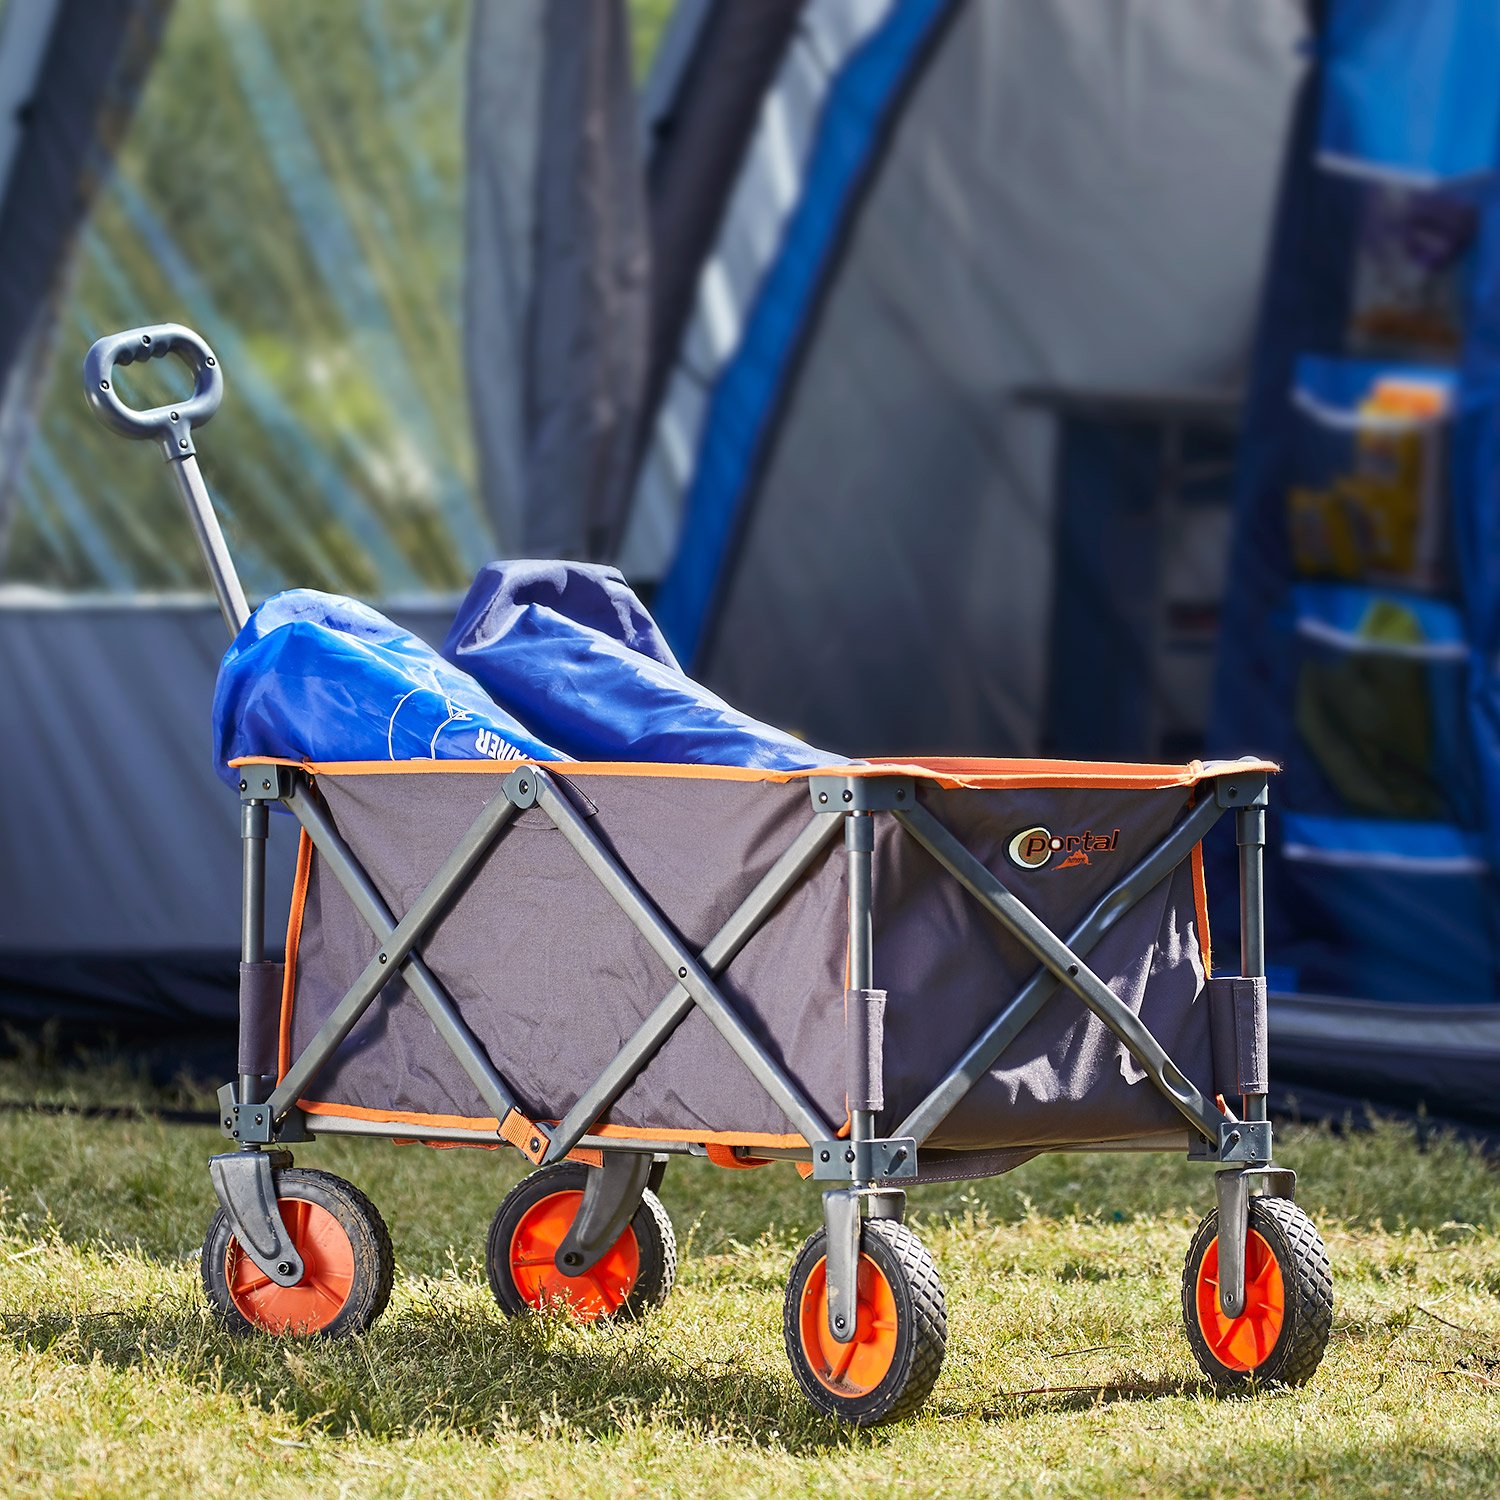 Image of Portal Outdoor Alf Folding Wagon in front of tent.